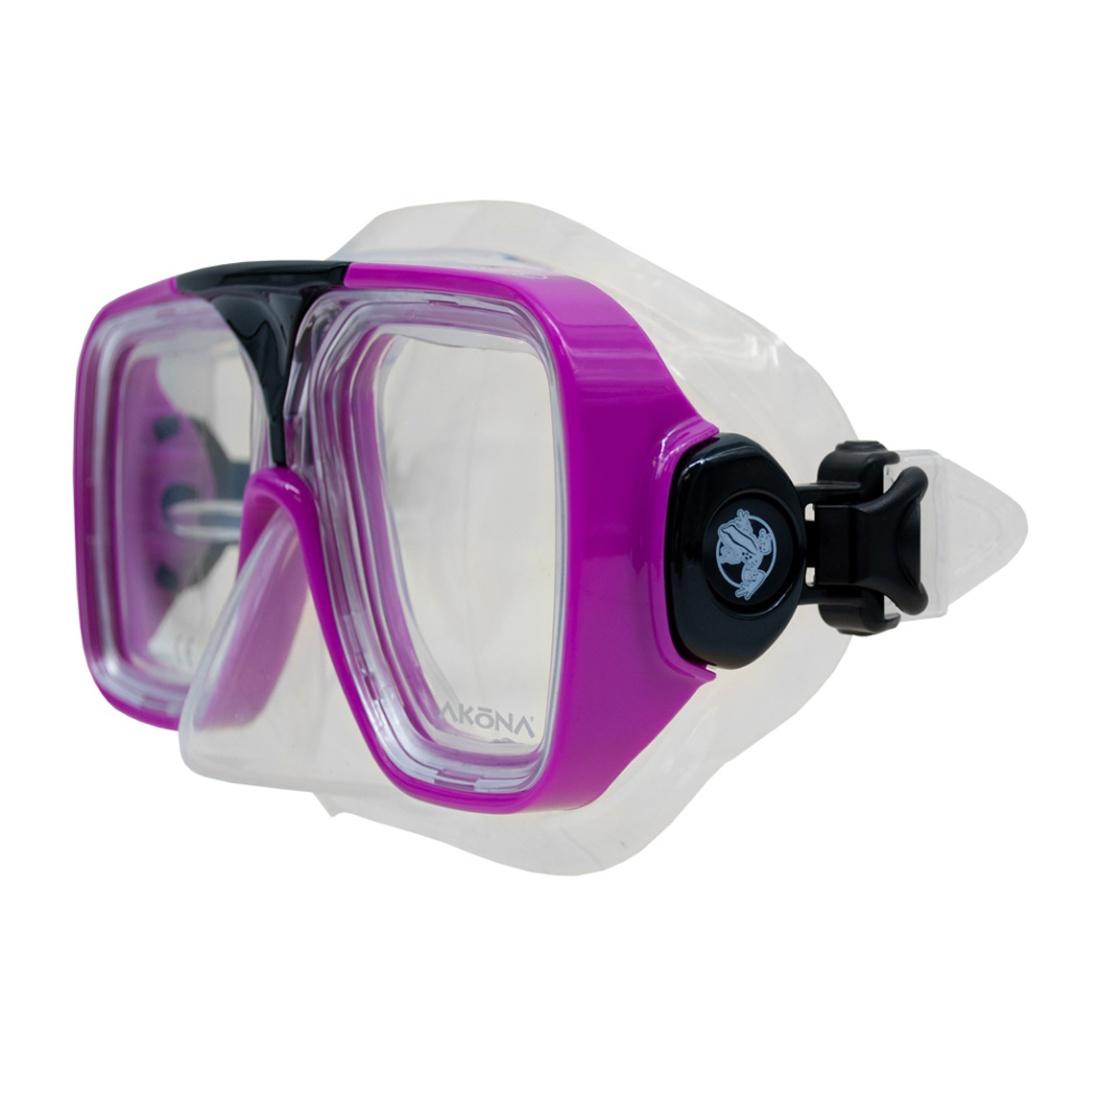 BREEZE MASK - AKM280 MG Left